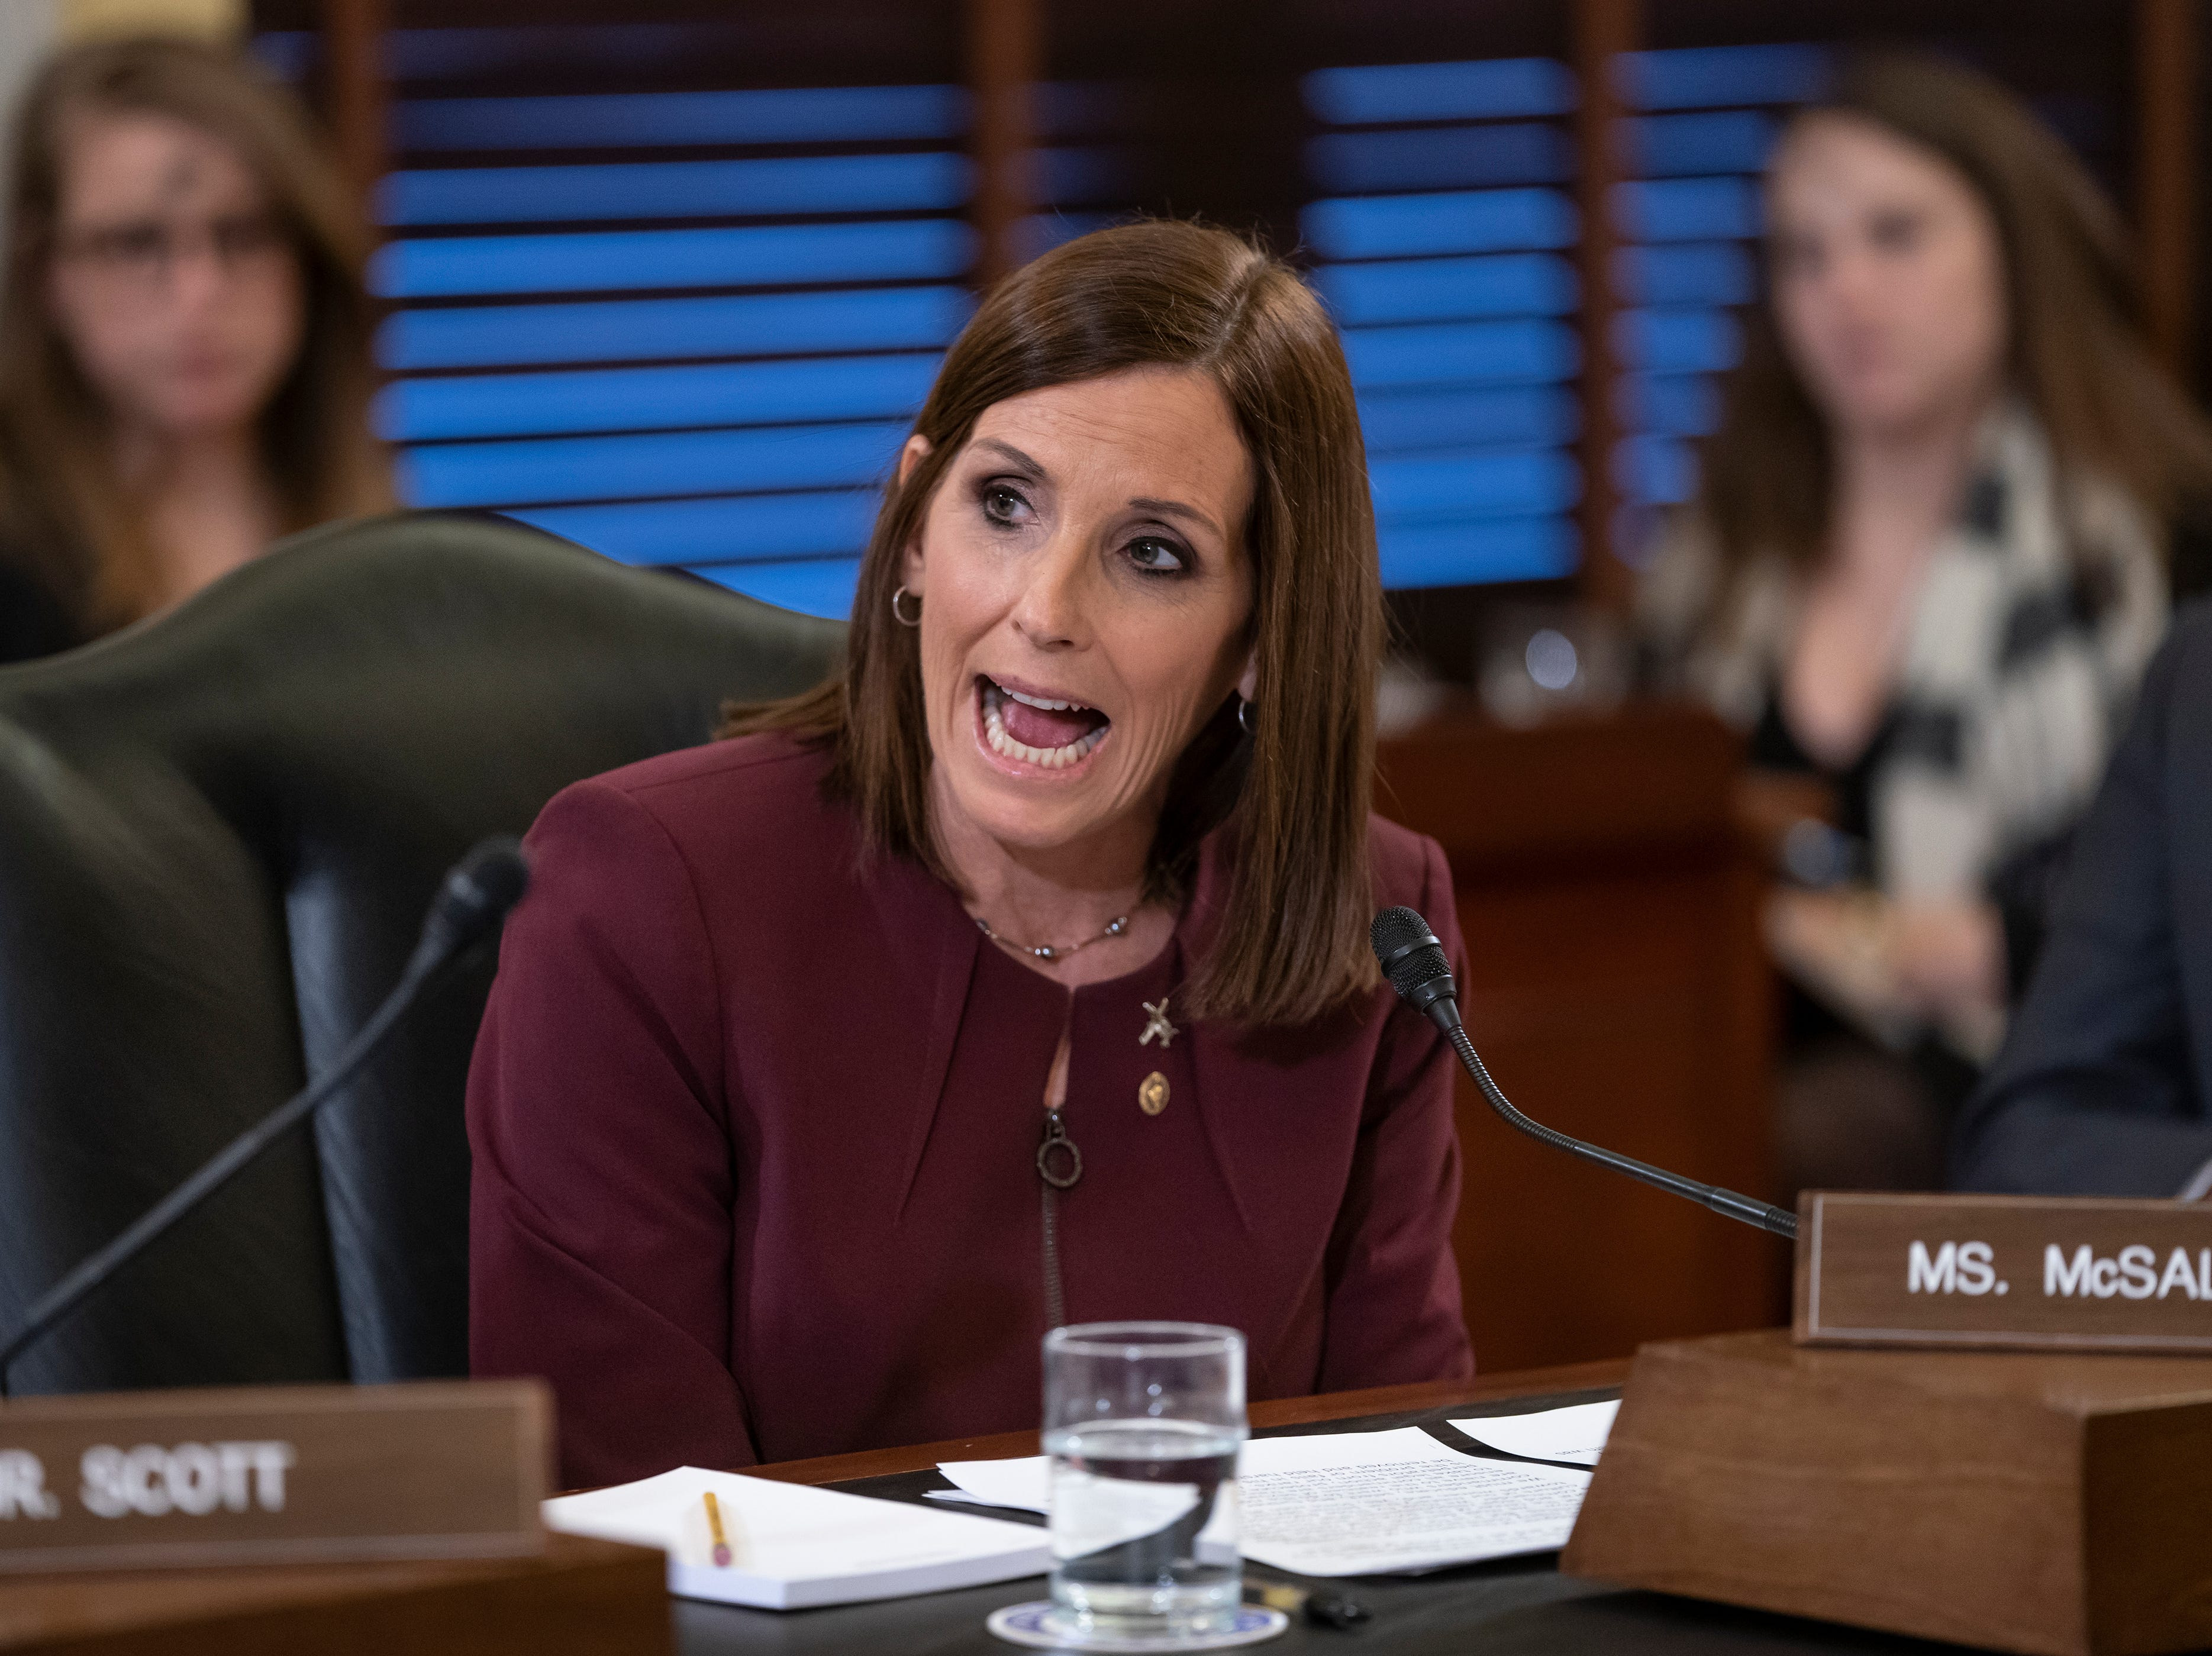 During a hearing by the Senate Armed Services Subcommittee on Personnel about prevention and response to sexual assault in the military, Sen. Martha McSally, R-Ariz., recounts her own experience while serving as a colonel in the Air Force, on Capitol Hill in Washington, Wednesday, March 6, 2019. McSally, the first female fighter pilot to fly in combat, says she was raped in the Air Force by superior officer.